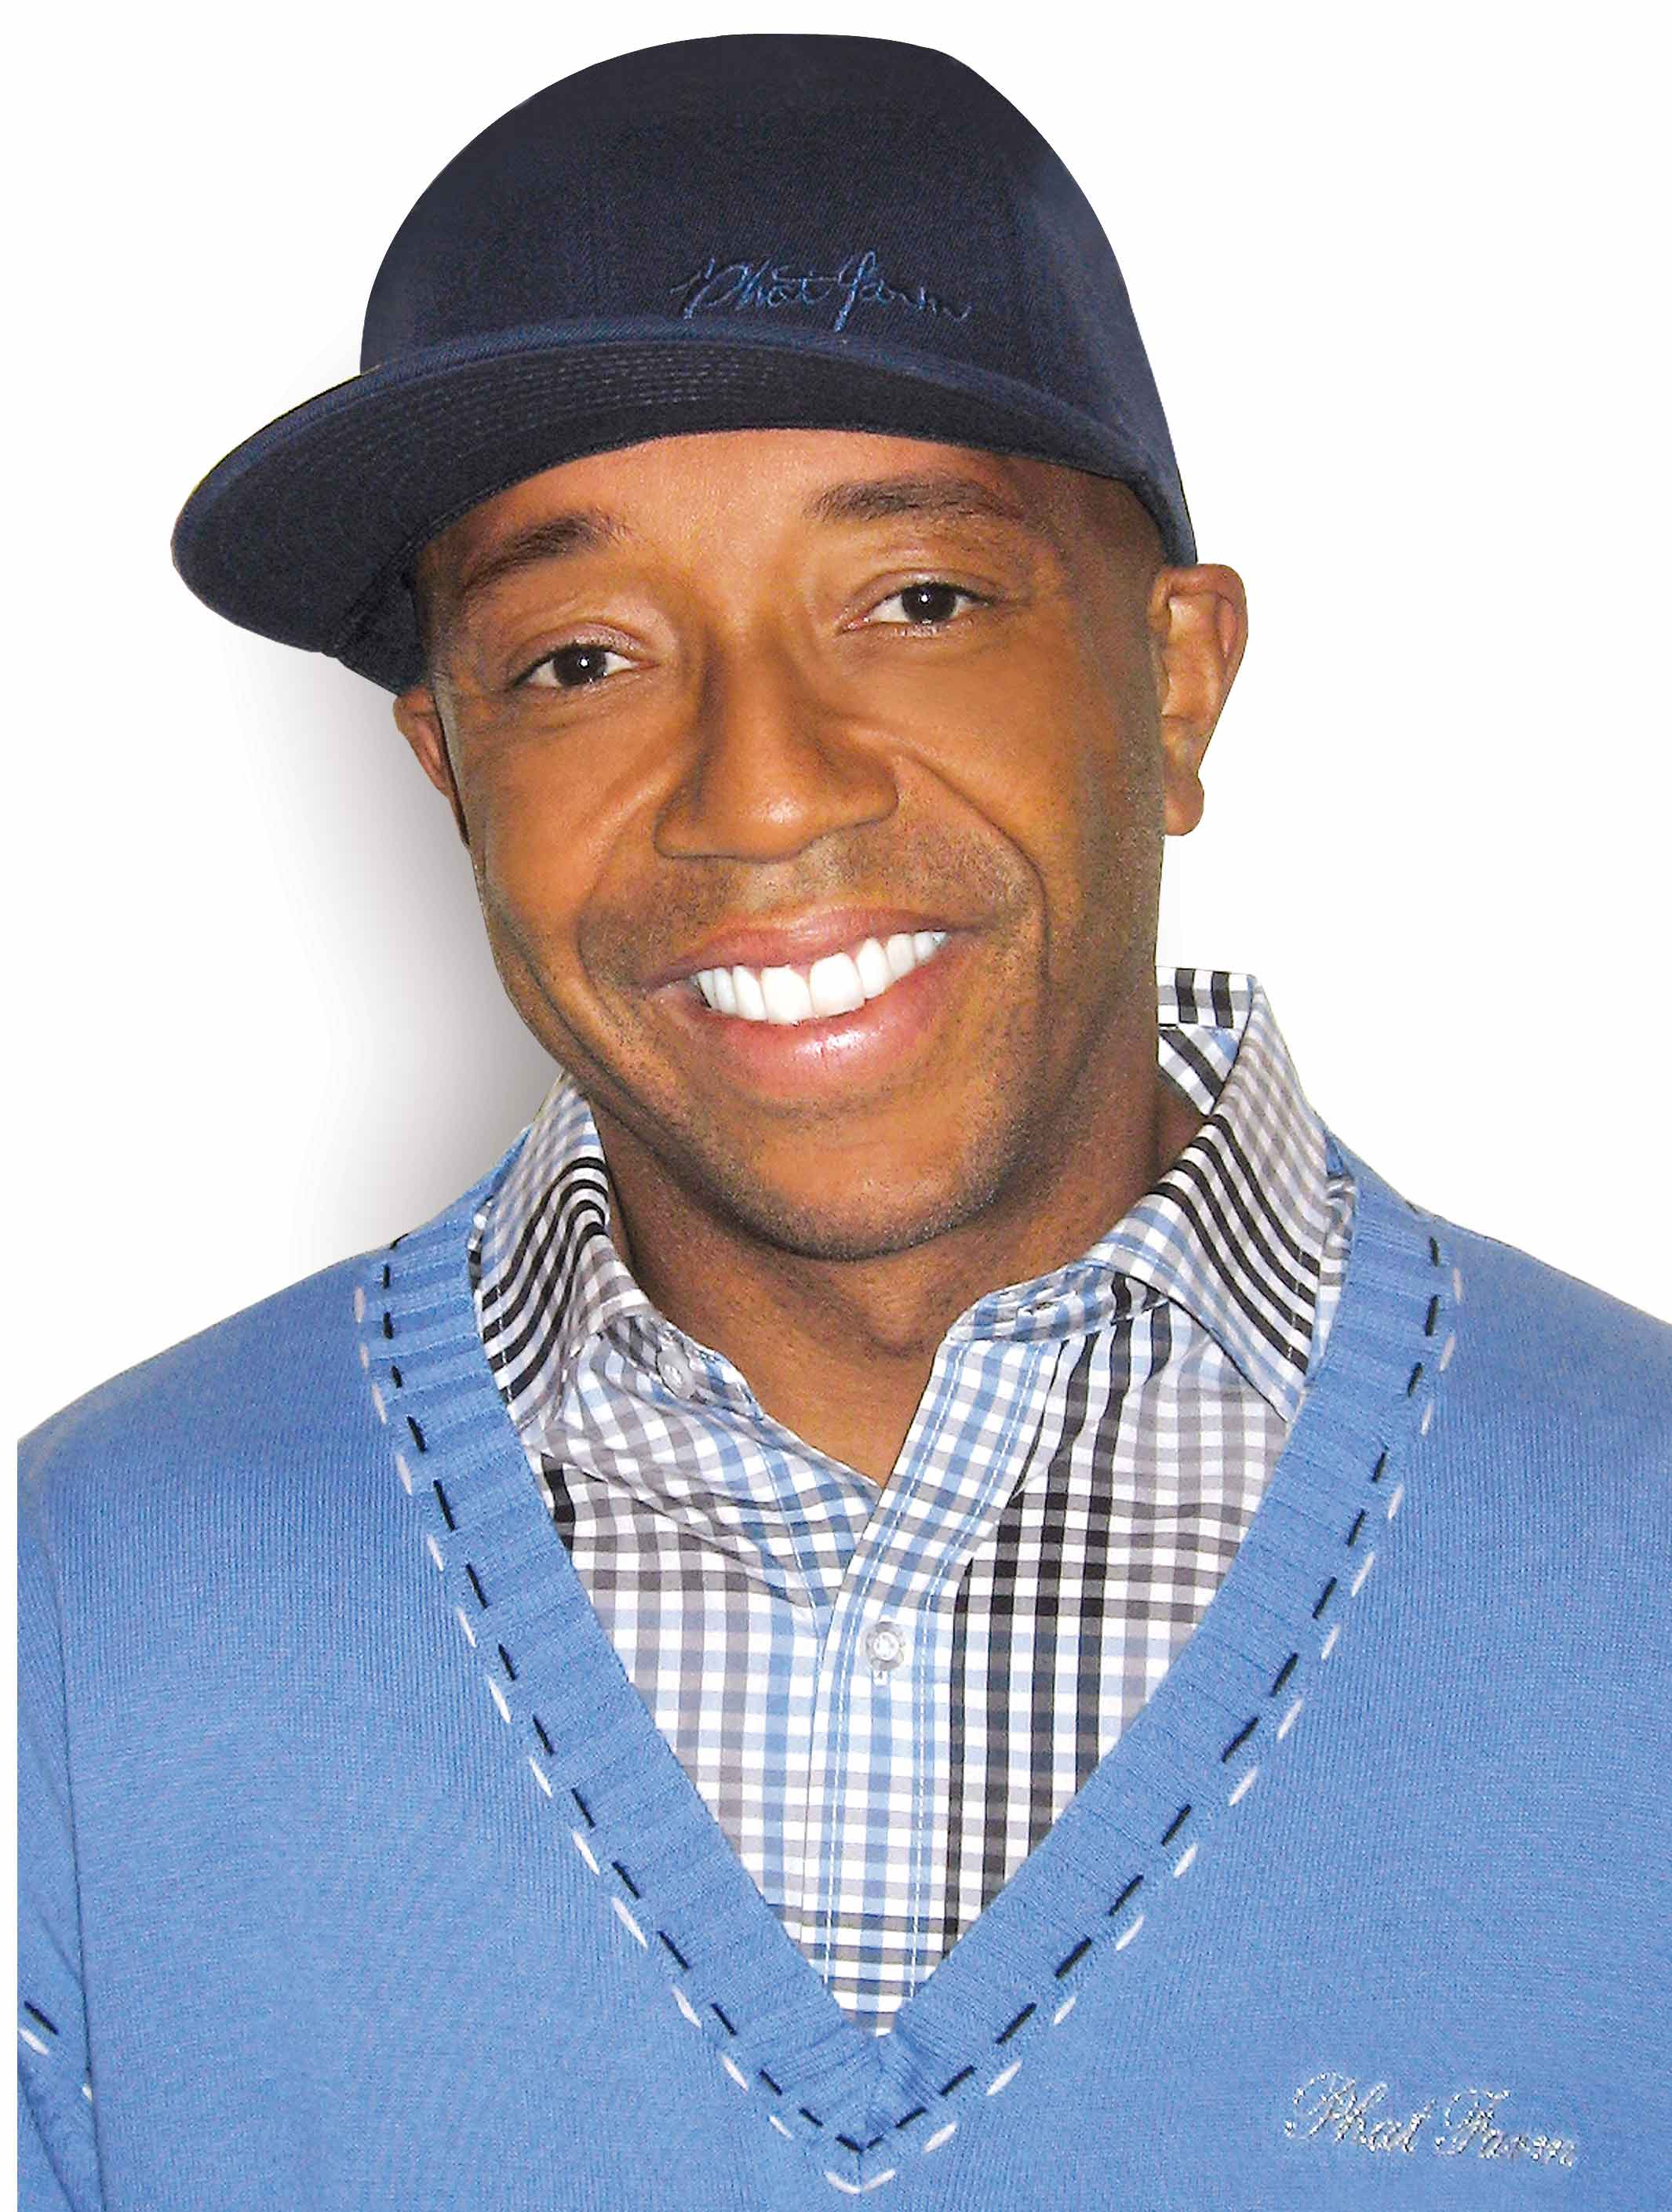 Russell Simmons's quote #8